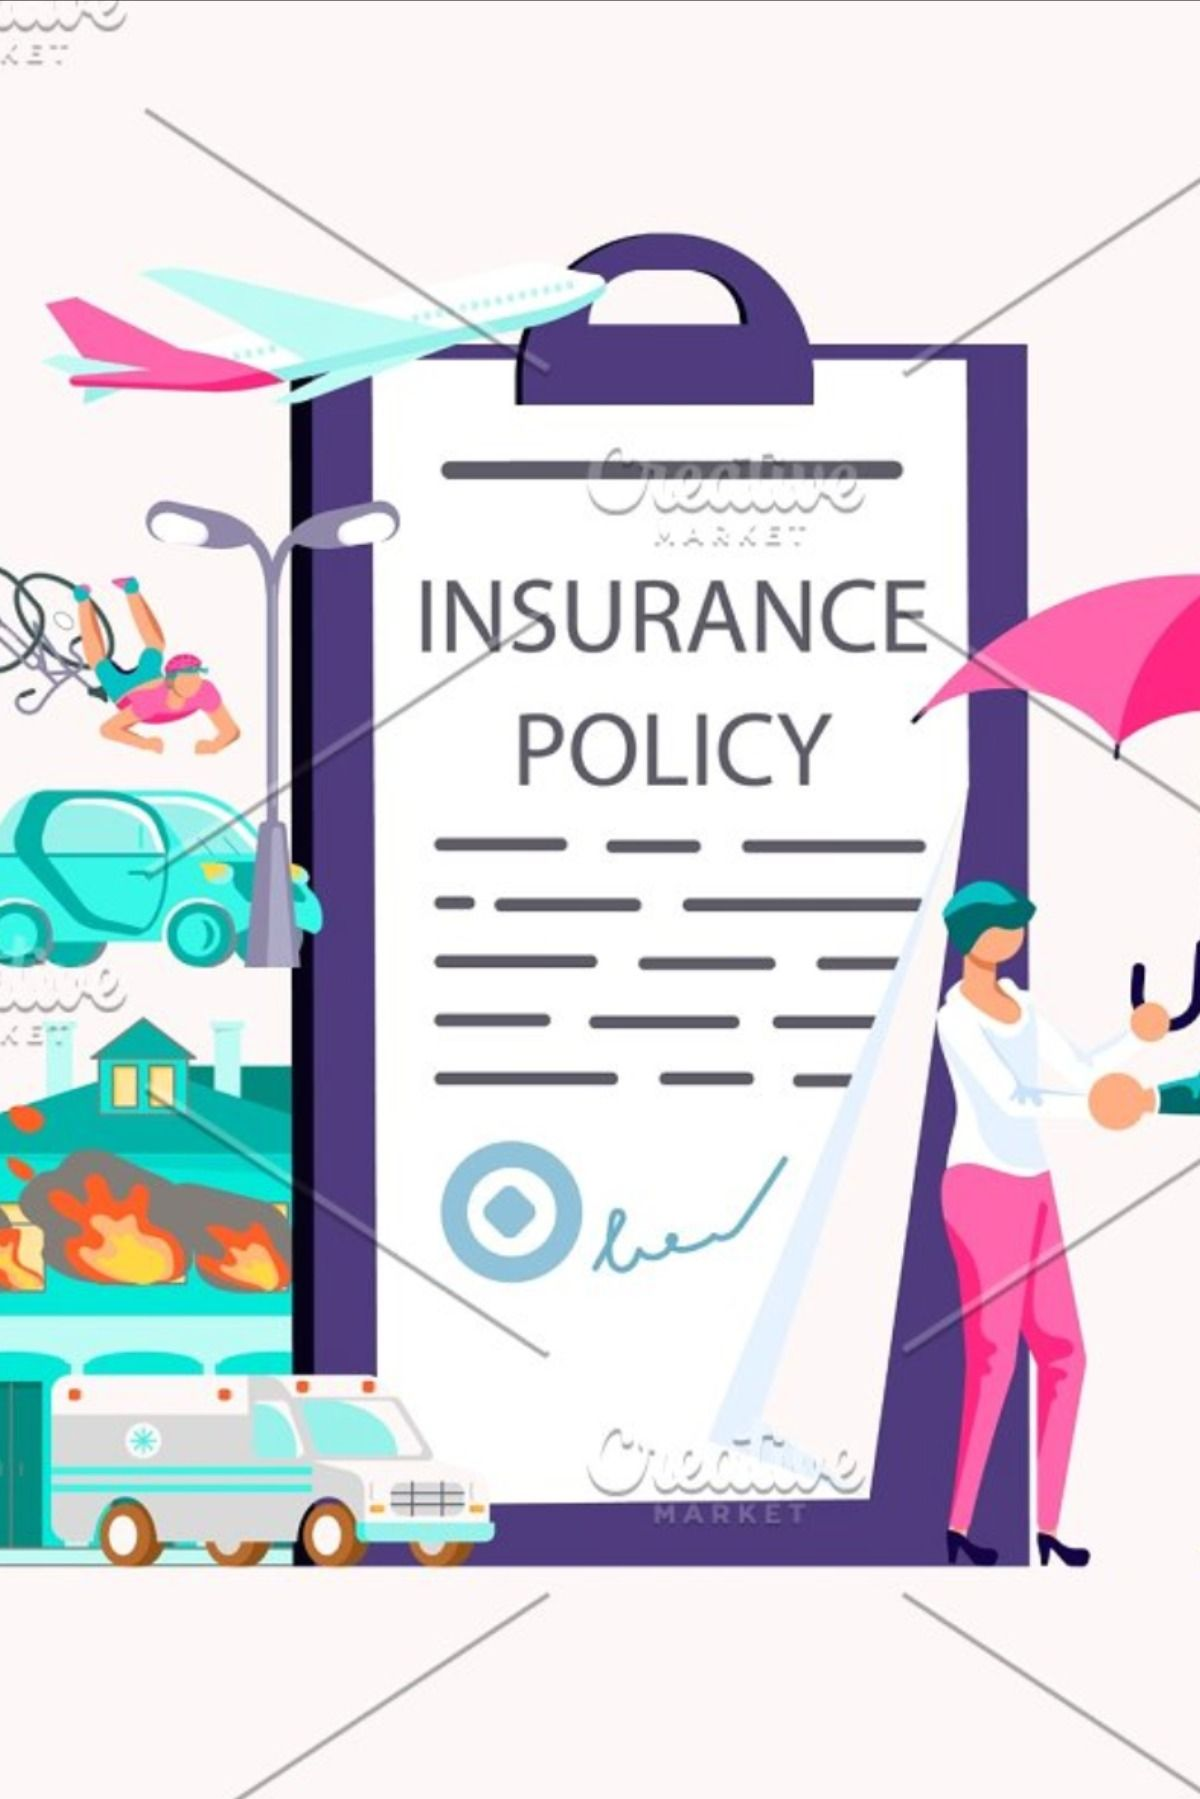 Insurance service Concept in 2020 | Life, Concept, Photo ...